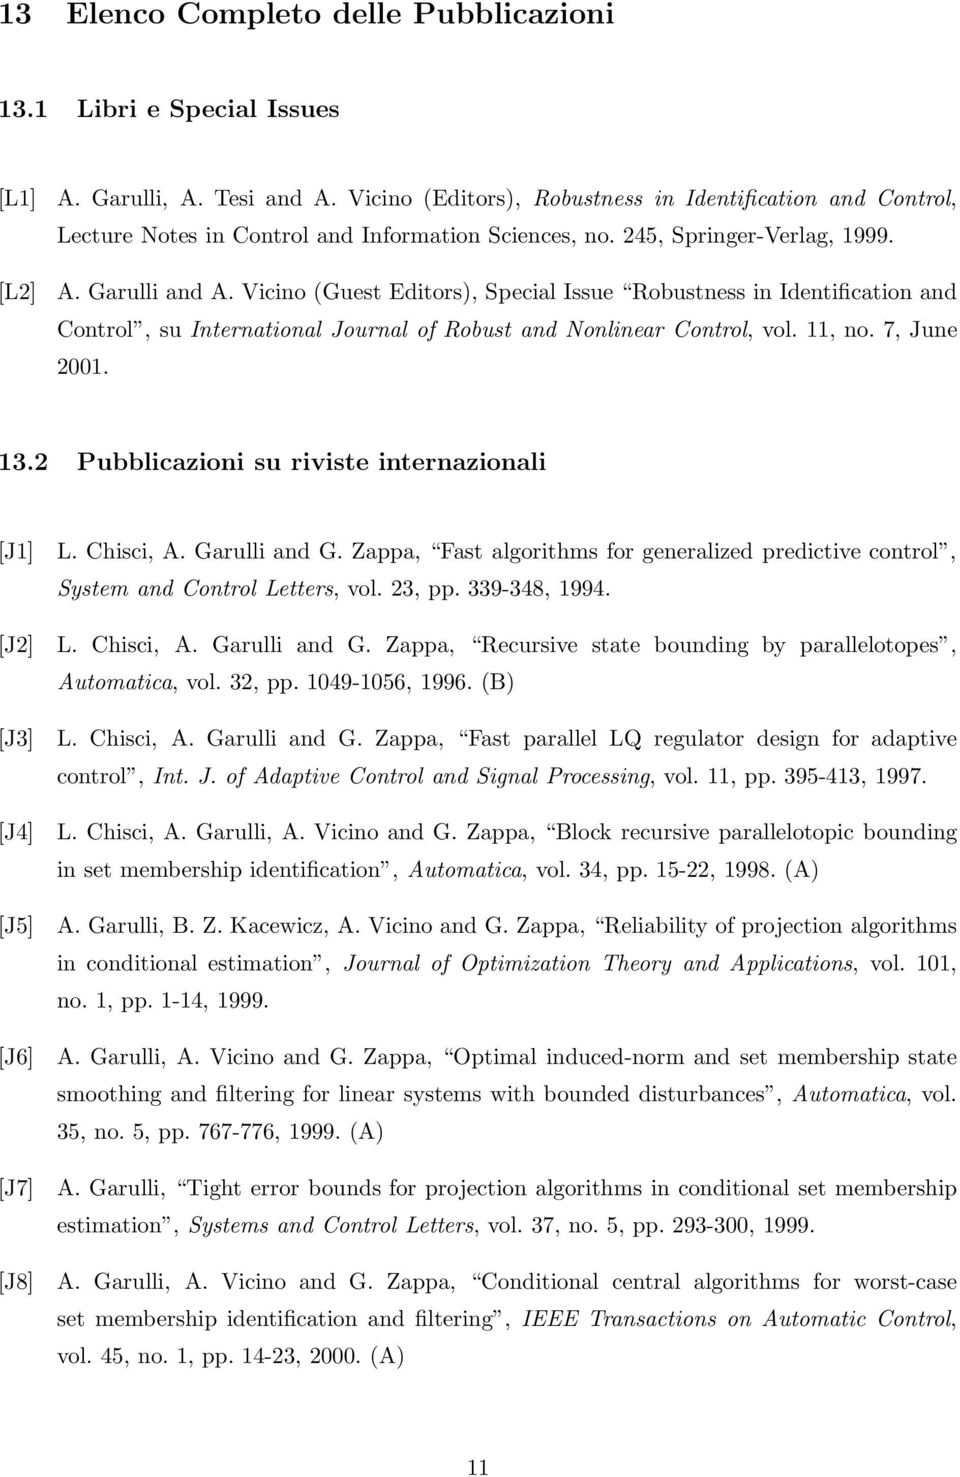 Vicino (Guest Editors), Special Issue Robustness in Identification and Control, su International Journal of Robust and Nonlinear Control, vol. 11, no. 7, June 2001. 13.